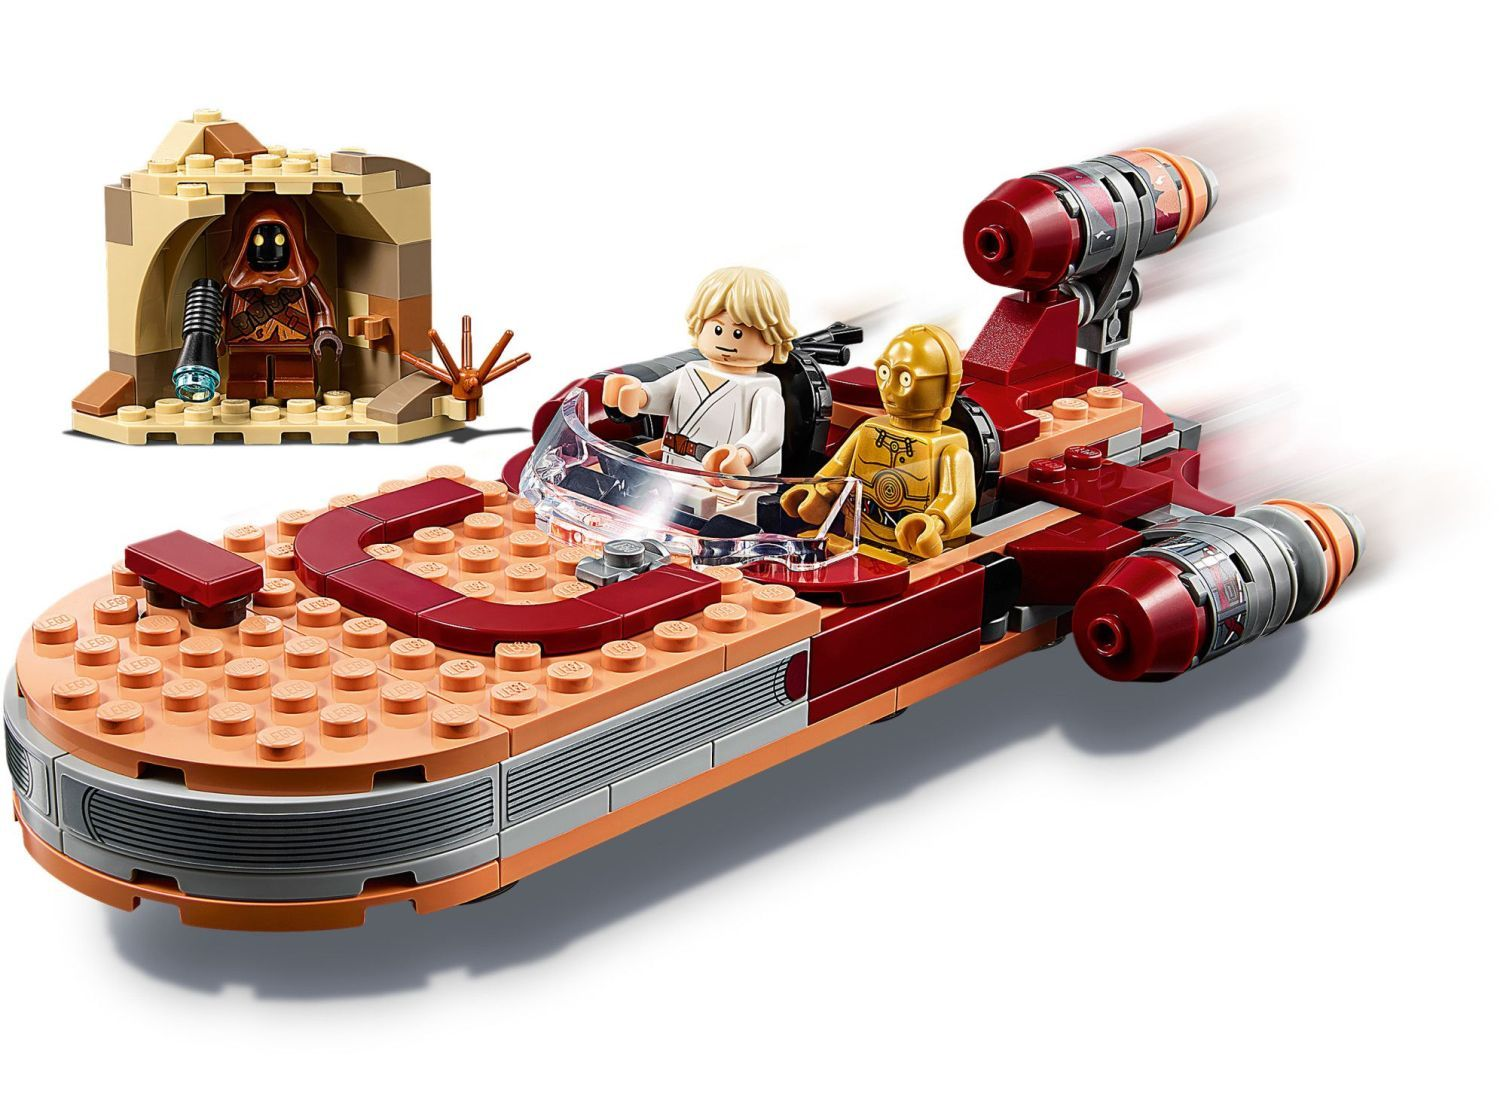 Конструктор Lego Star Wars - Luke Skywalker's Landspeeder (75271) - 5